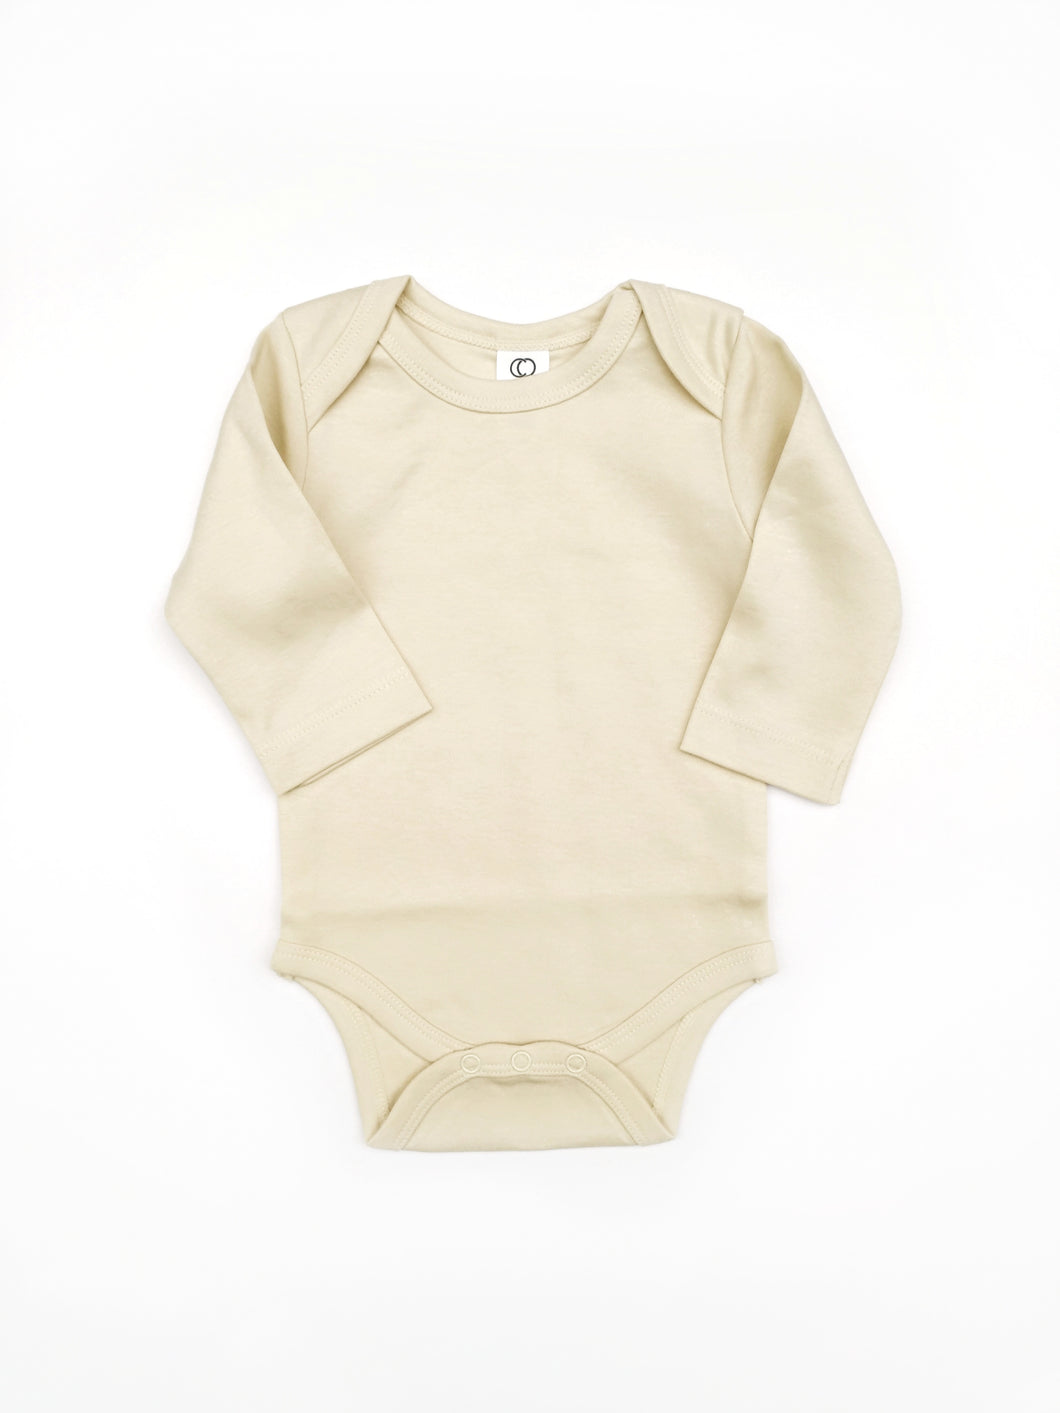 Happy Camper - Basic Bodysuit with Long Sleeves, sizes 0/3 months - 12/18 months